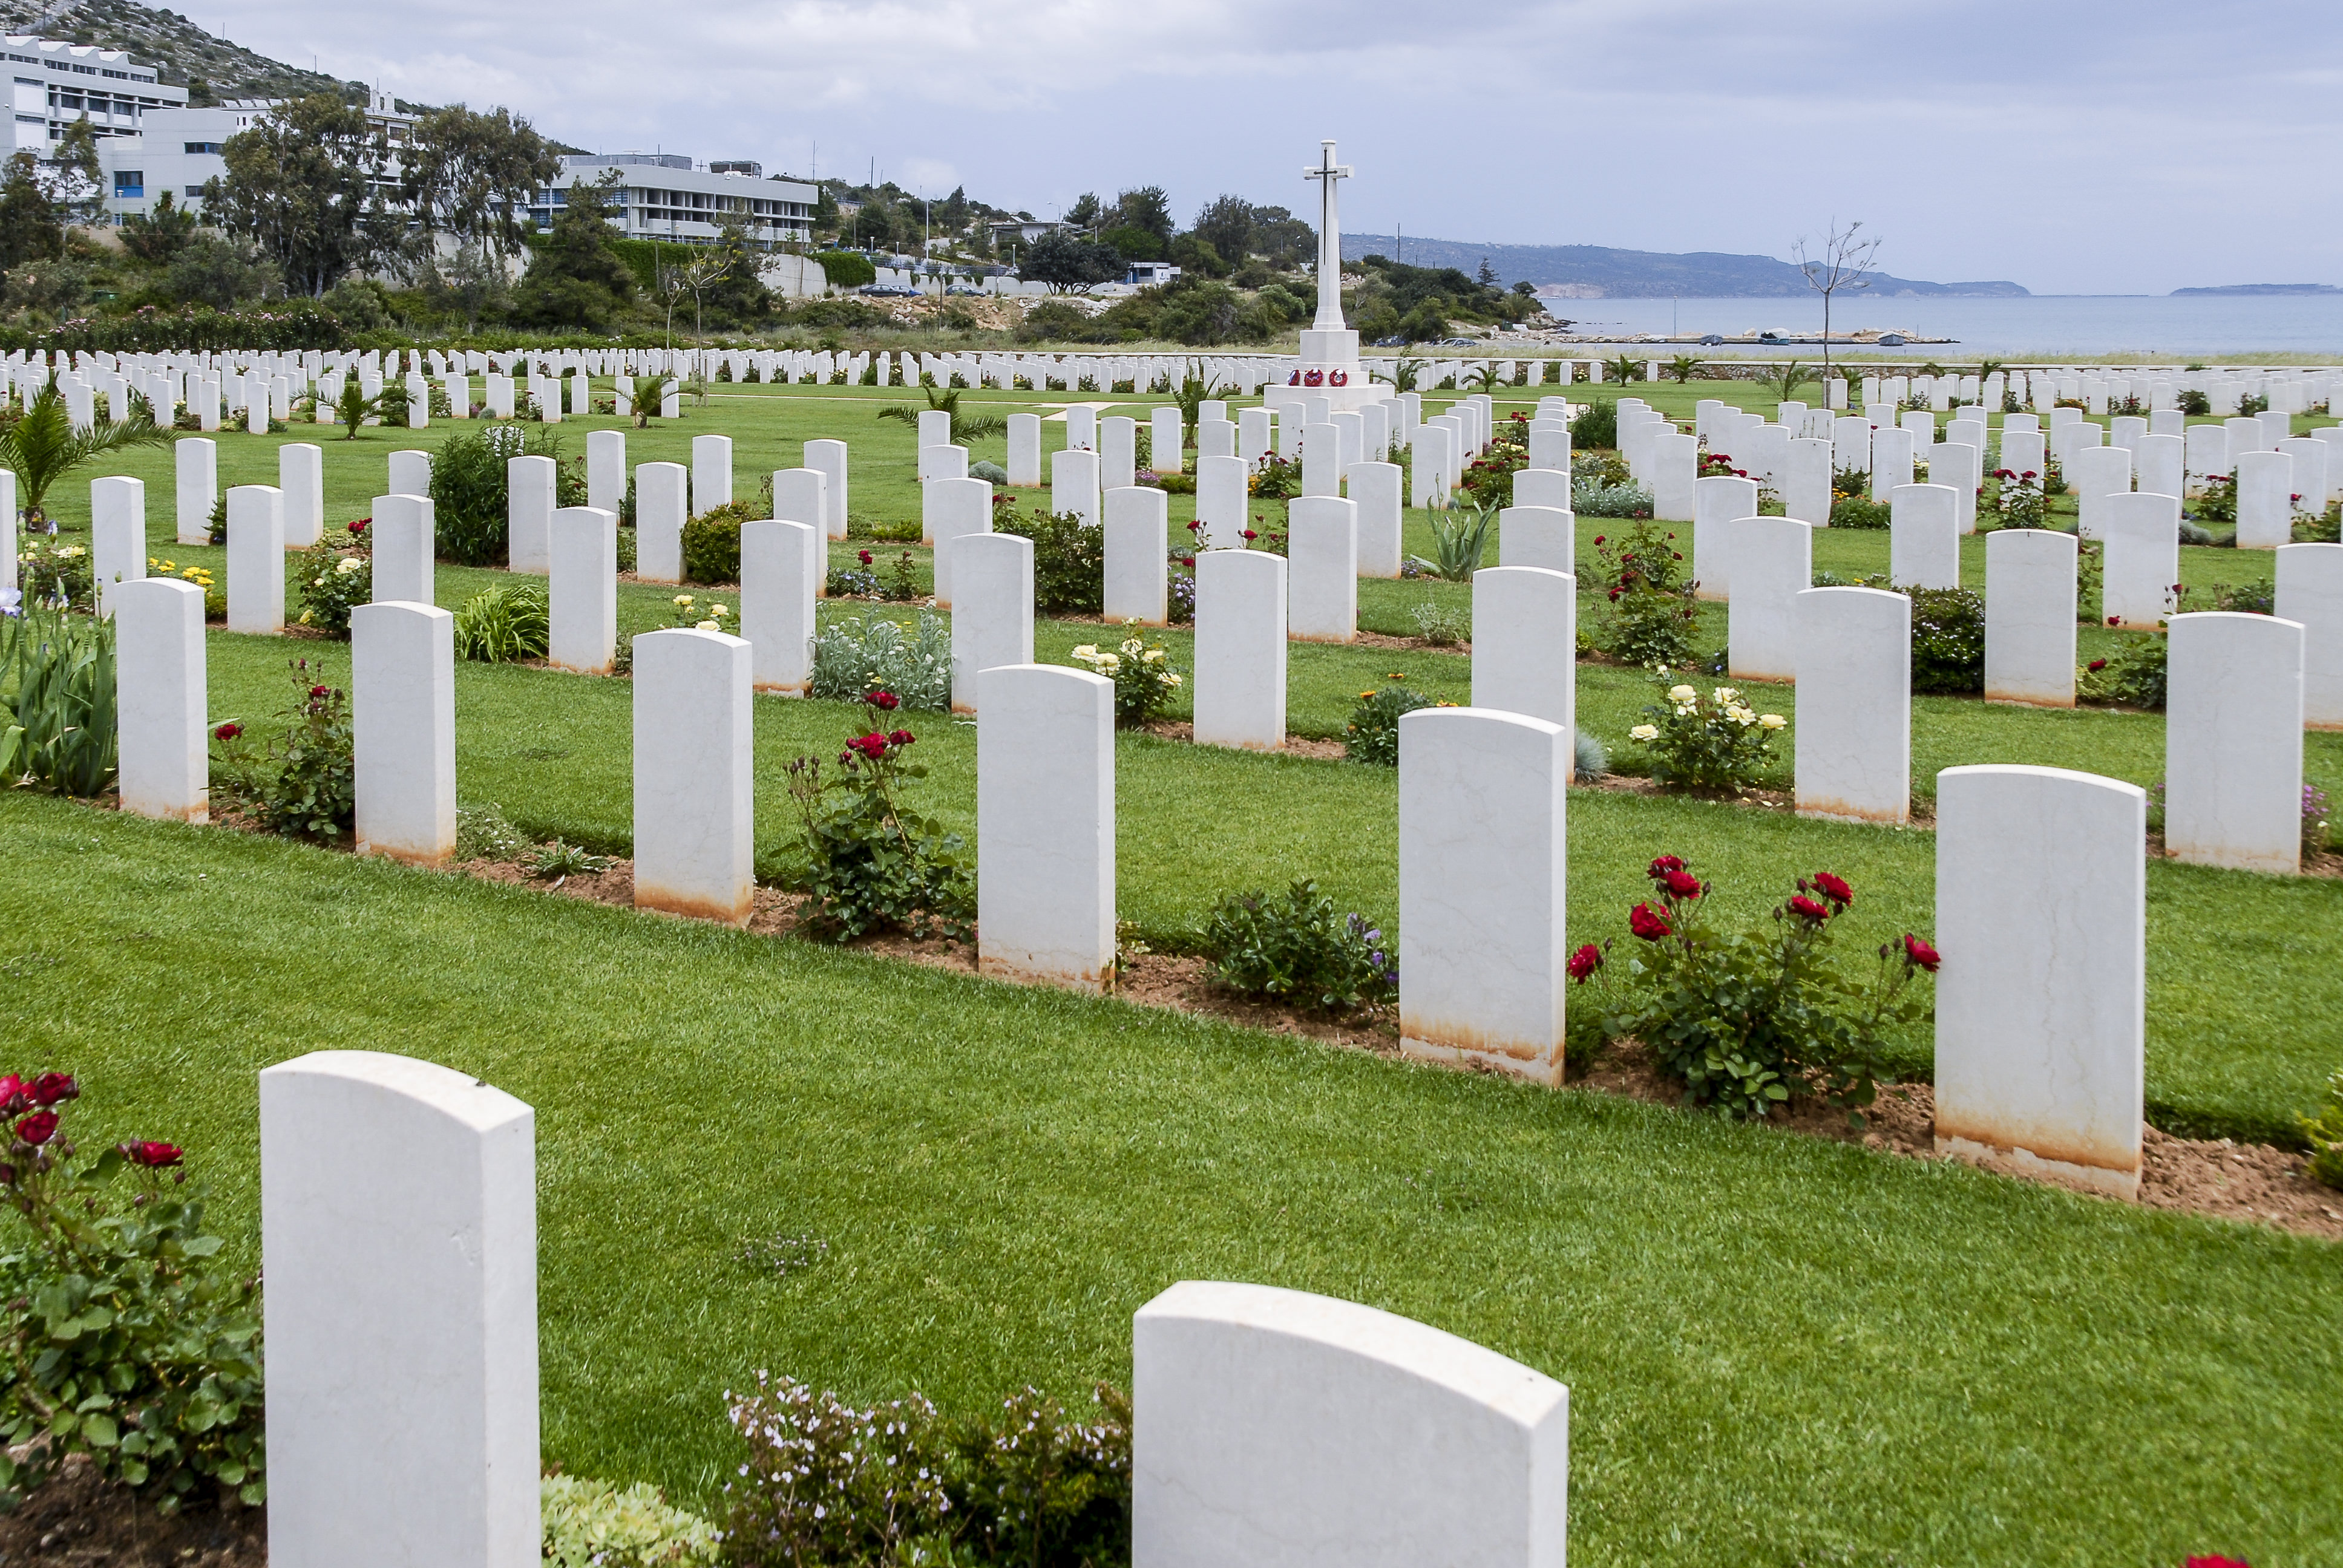 Suda Bay WWII Allied Cemetery, Akrotiri Peninsula, Crete, Greece. British, Australian and New Zealand soldiers lie buried here. The cemetery is near Chania.